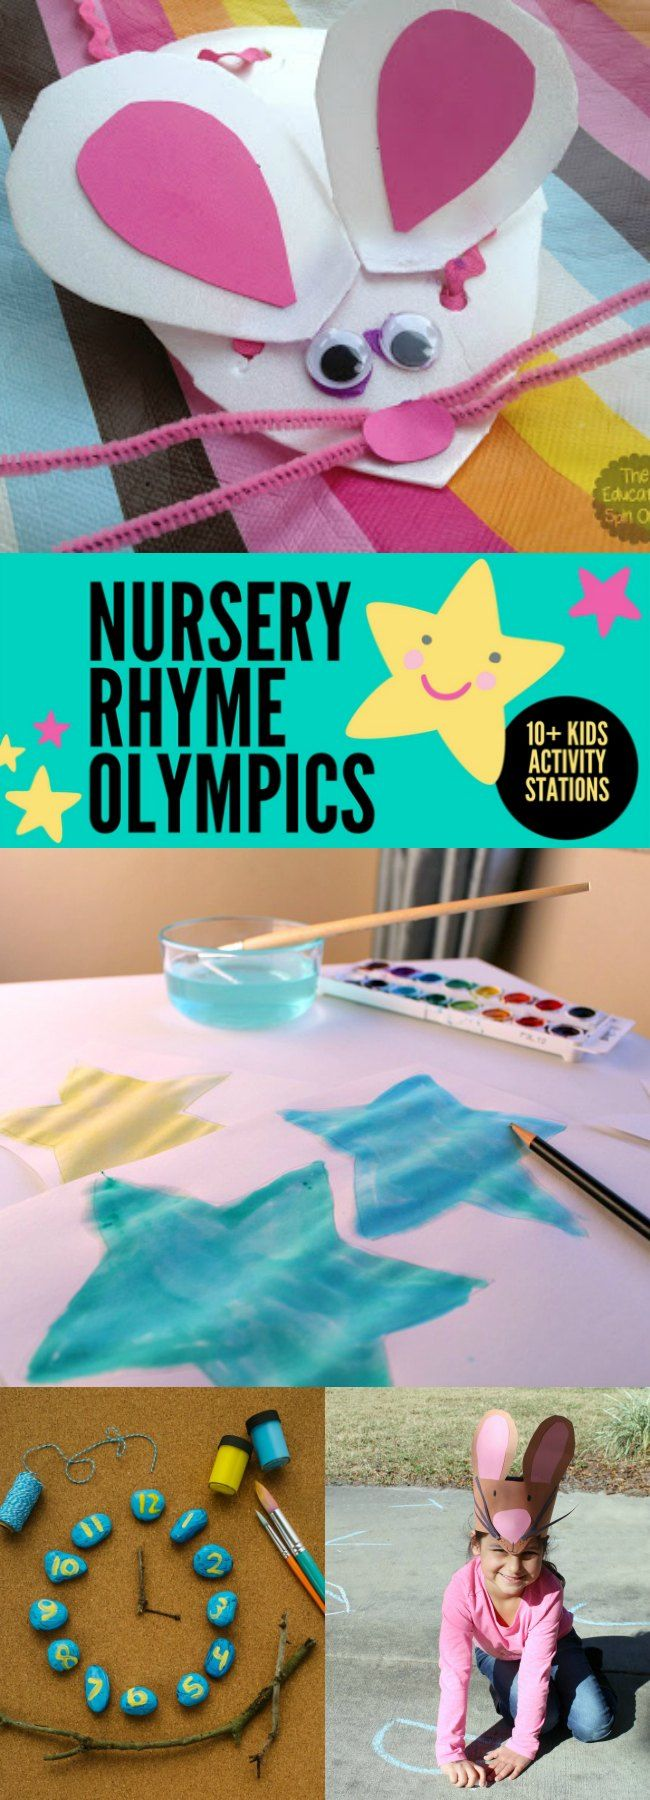 Nursery Rhyme Activity Ideas inspired by your favorite Mother Goose rhymes. Host a week of fun or a playdate with stations with these fun and simple nursery rhyme themed ideas for preschoolers.